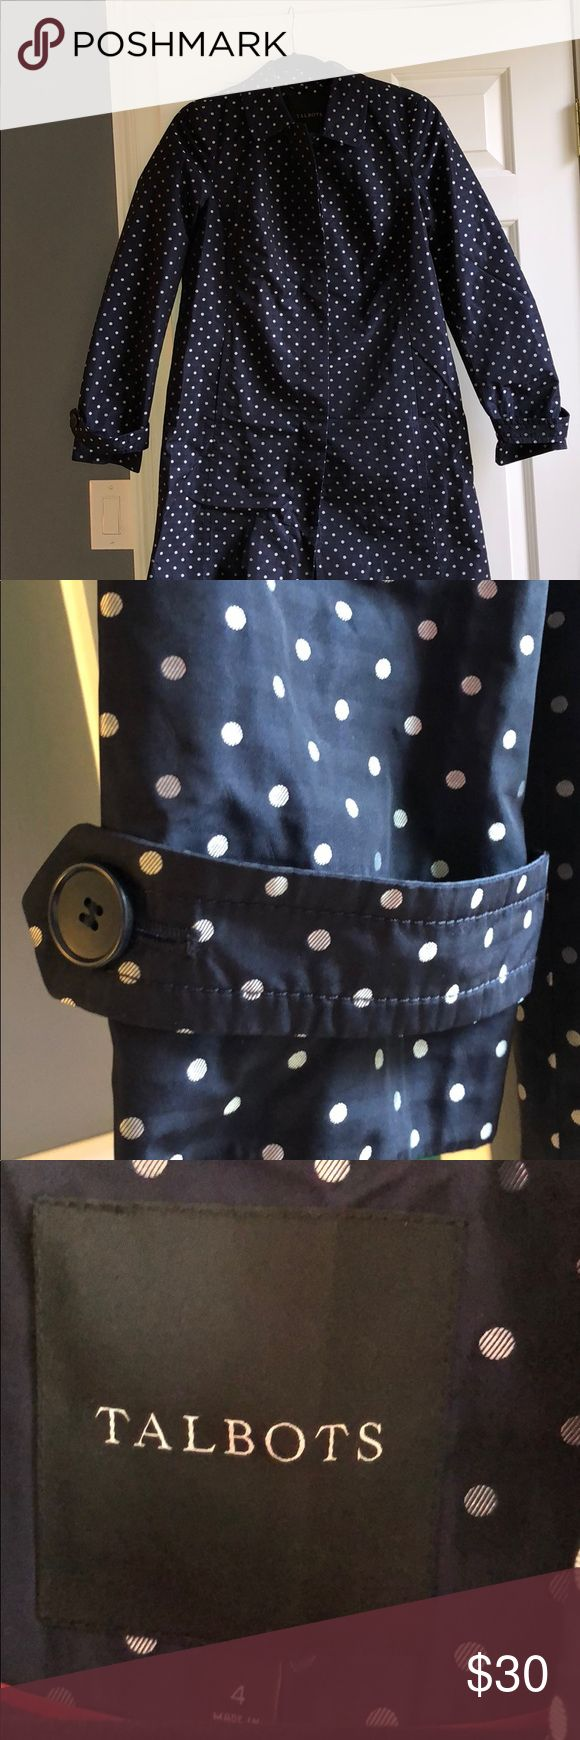 Talbots rain coat Navy blue and silver polka dot rain coat with full lining.  Button closure. Size 4. Falls to knees on average height woman. Perfect for wearing over business suits or casually with jeans. Talbots Jackets & Coats Trench Coats